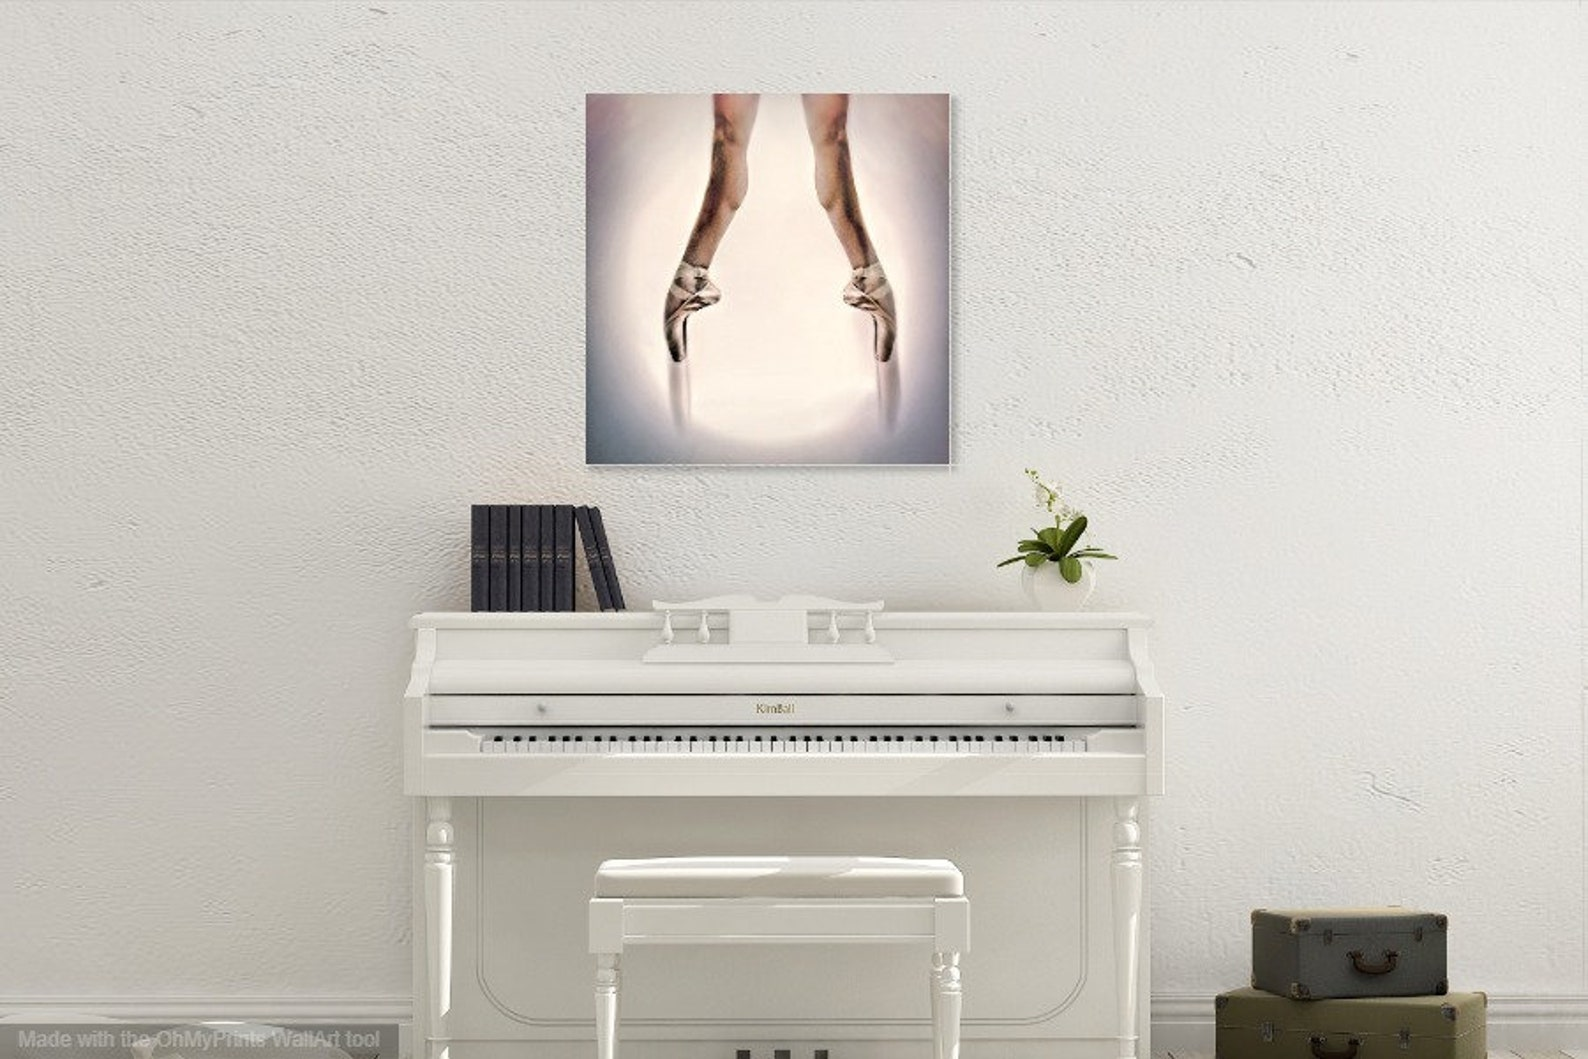 releve-ballet art print-ballerina pointe shoes-ballet-dancer-dance arts-ballet wall art-ballerina decor-free shipping-dancer en